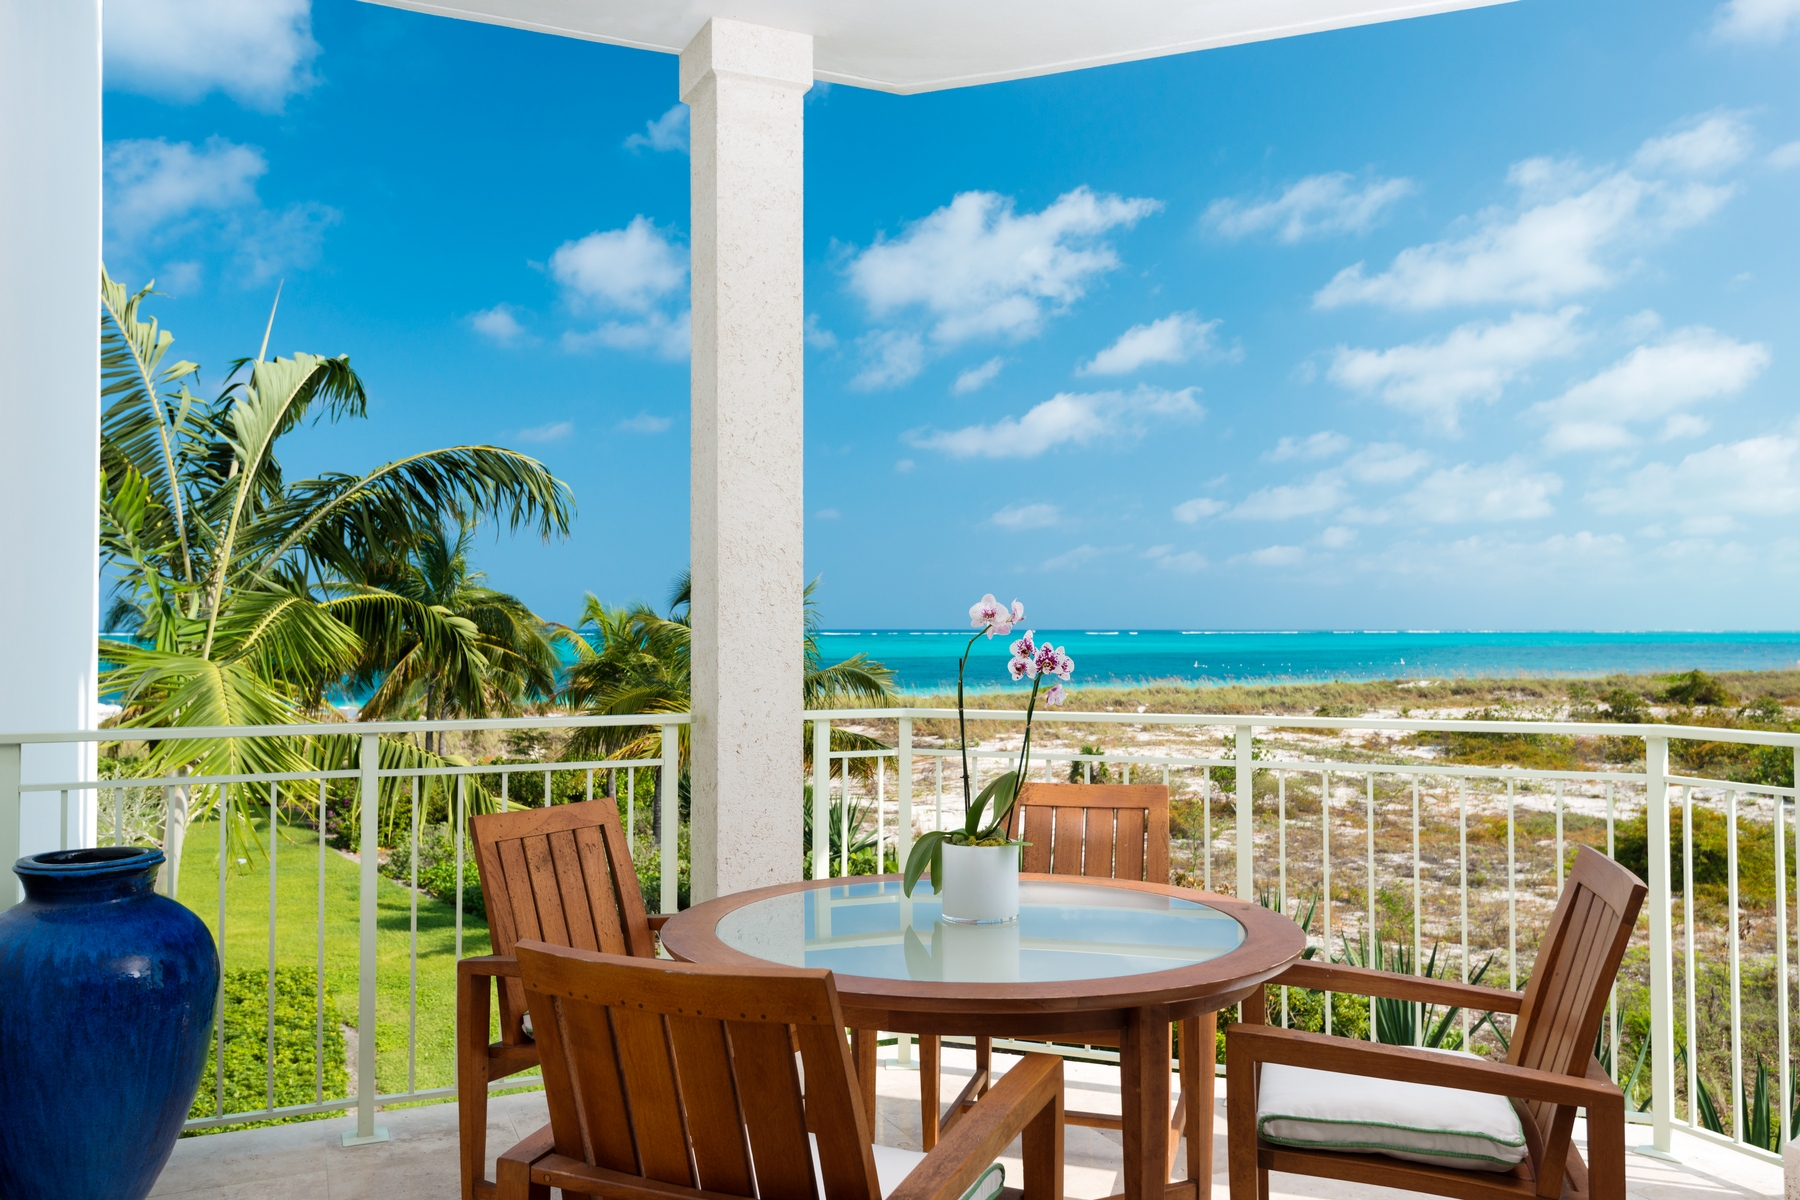 Condominium for Sale at West Bay Club - Suite 210 West Bay Club, Grace Bay, Providenciales Turks And Caicos Islands